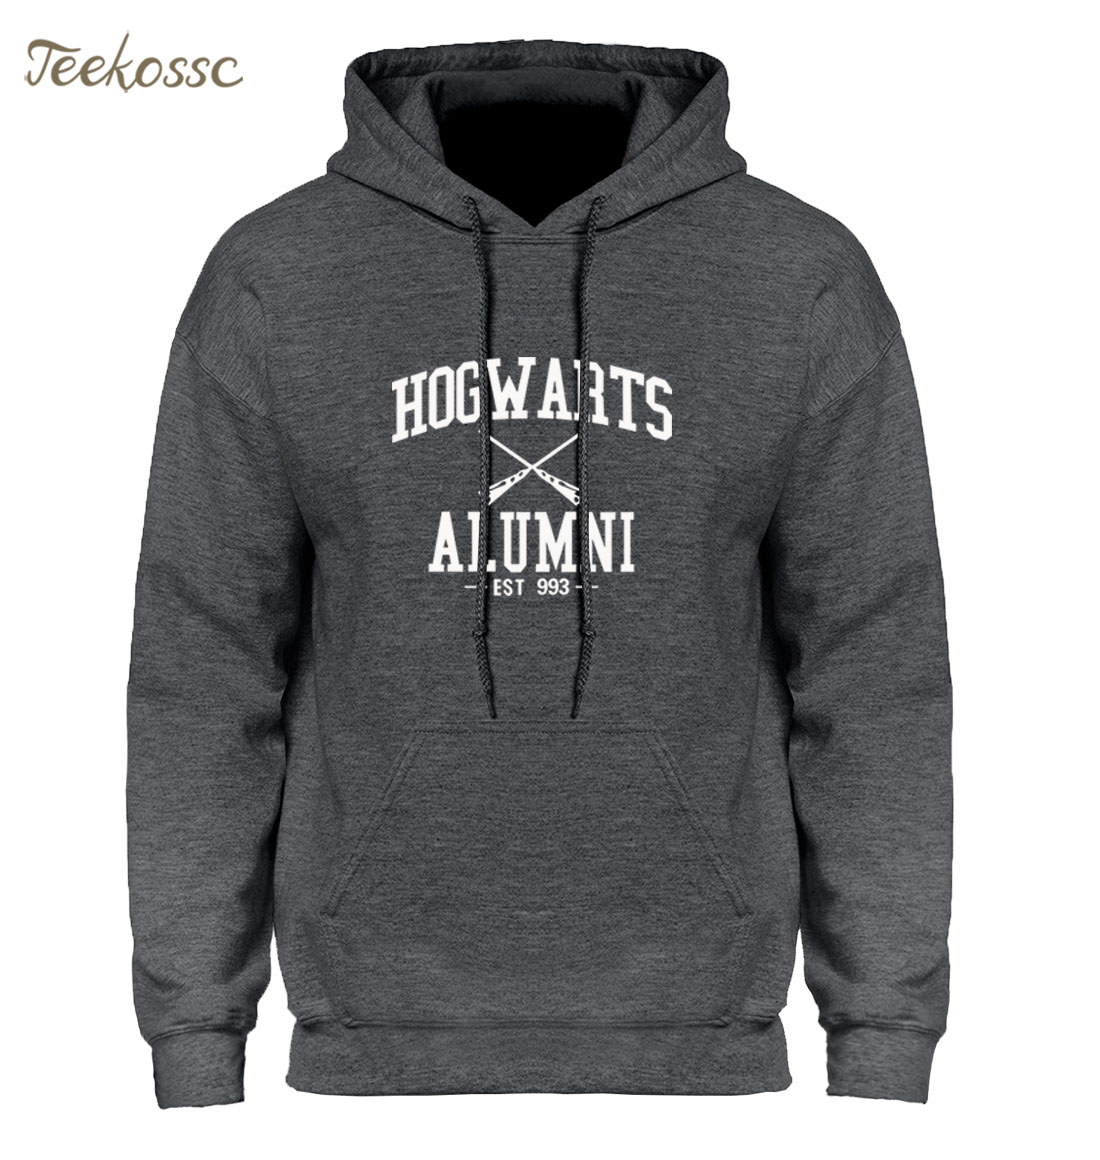 Hogwarts Alumni Inspired Magic Hoodie Men Slim Fit Hoodies Sweatshirt 2018 New Brand Winter Autumn Hooded Swag Harajuku Hoody